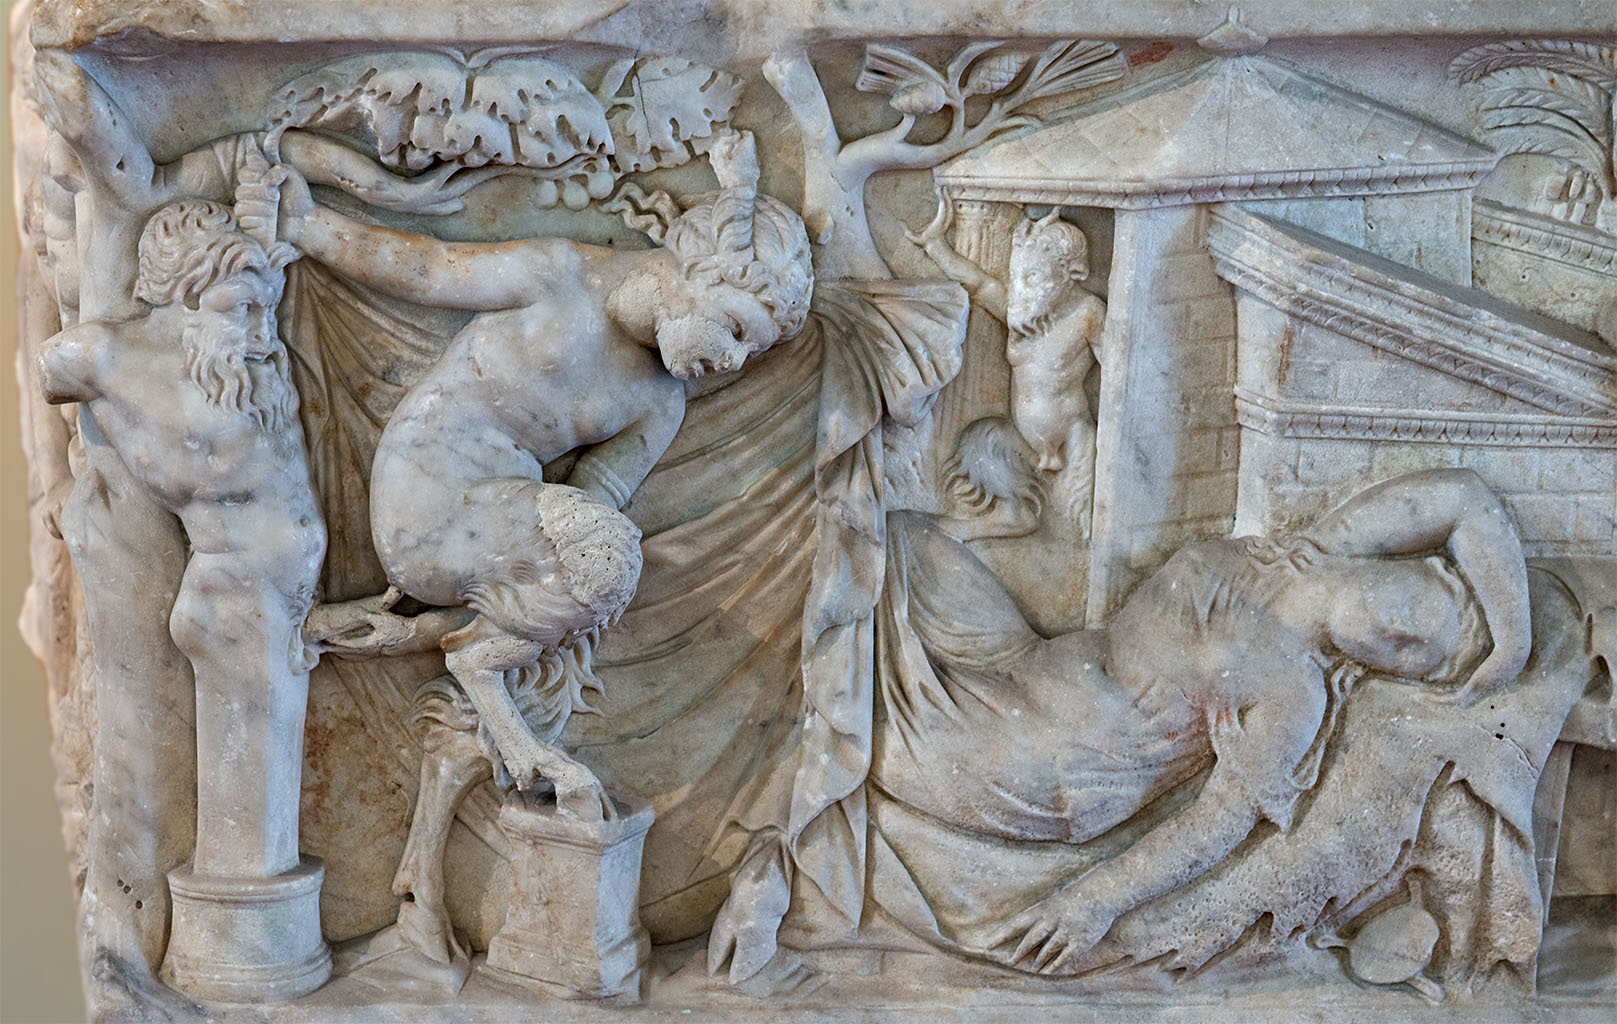 Sarcophagus with scenes of bacchanalia (close-up). White marble. 140—160 CE. Inv. No. 27710. Naples, National Archaeological Museum